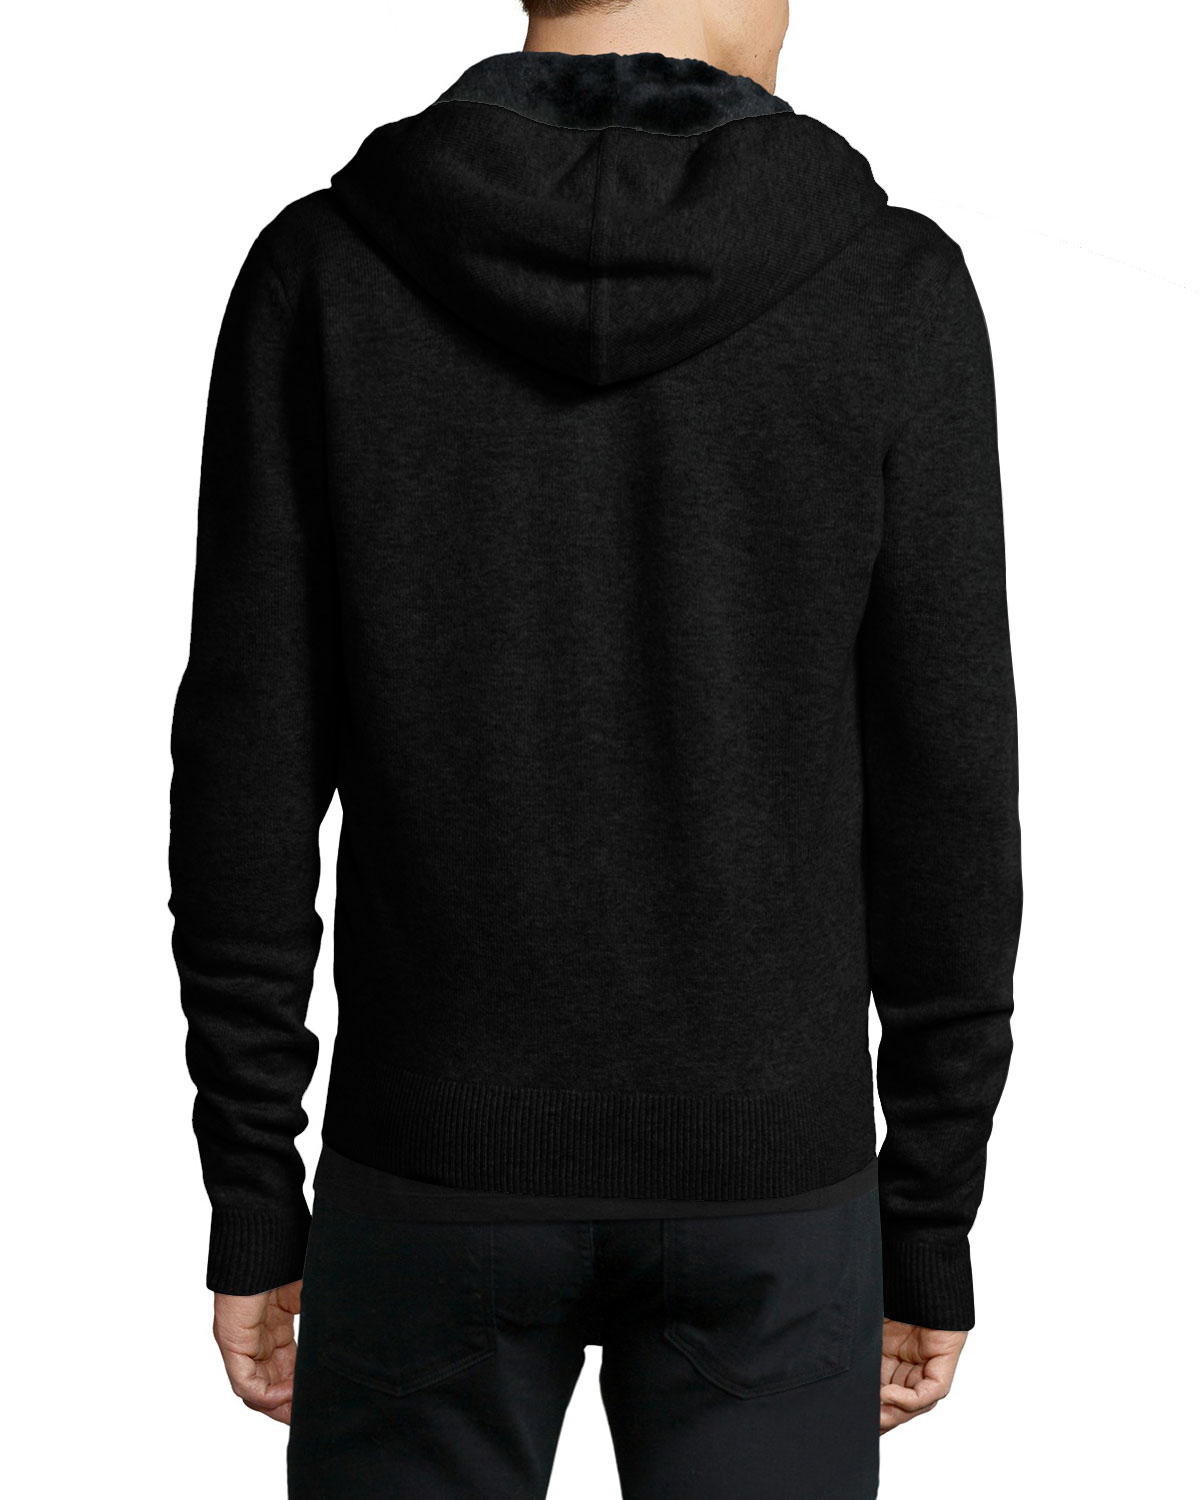 Yves Salomon Fur-Lined Woolcashmere Zip-Front Knit Hoodie -5679